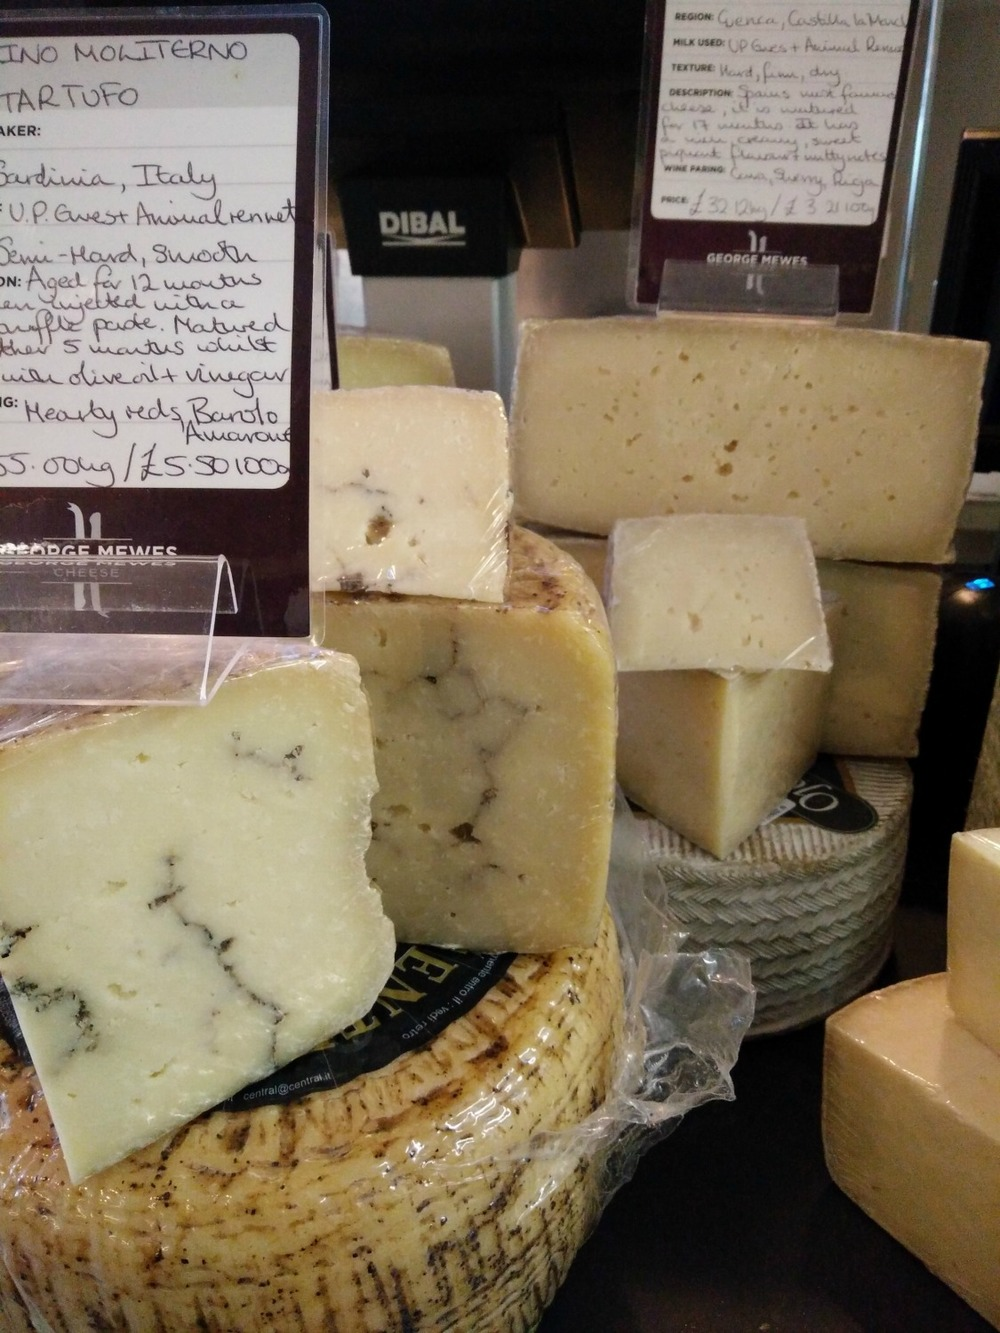 The Pecorino Tartufo is one of the current bestsellers.